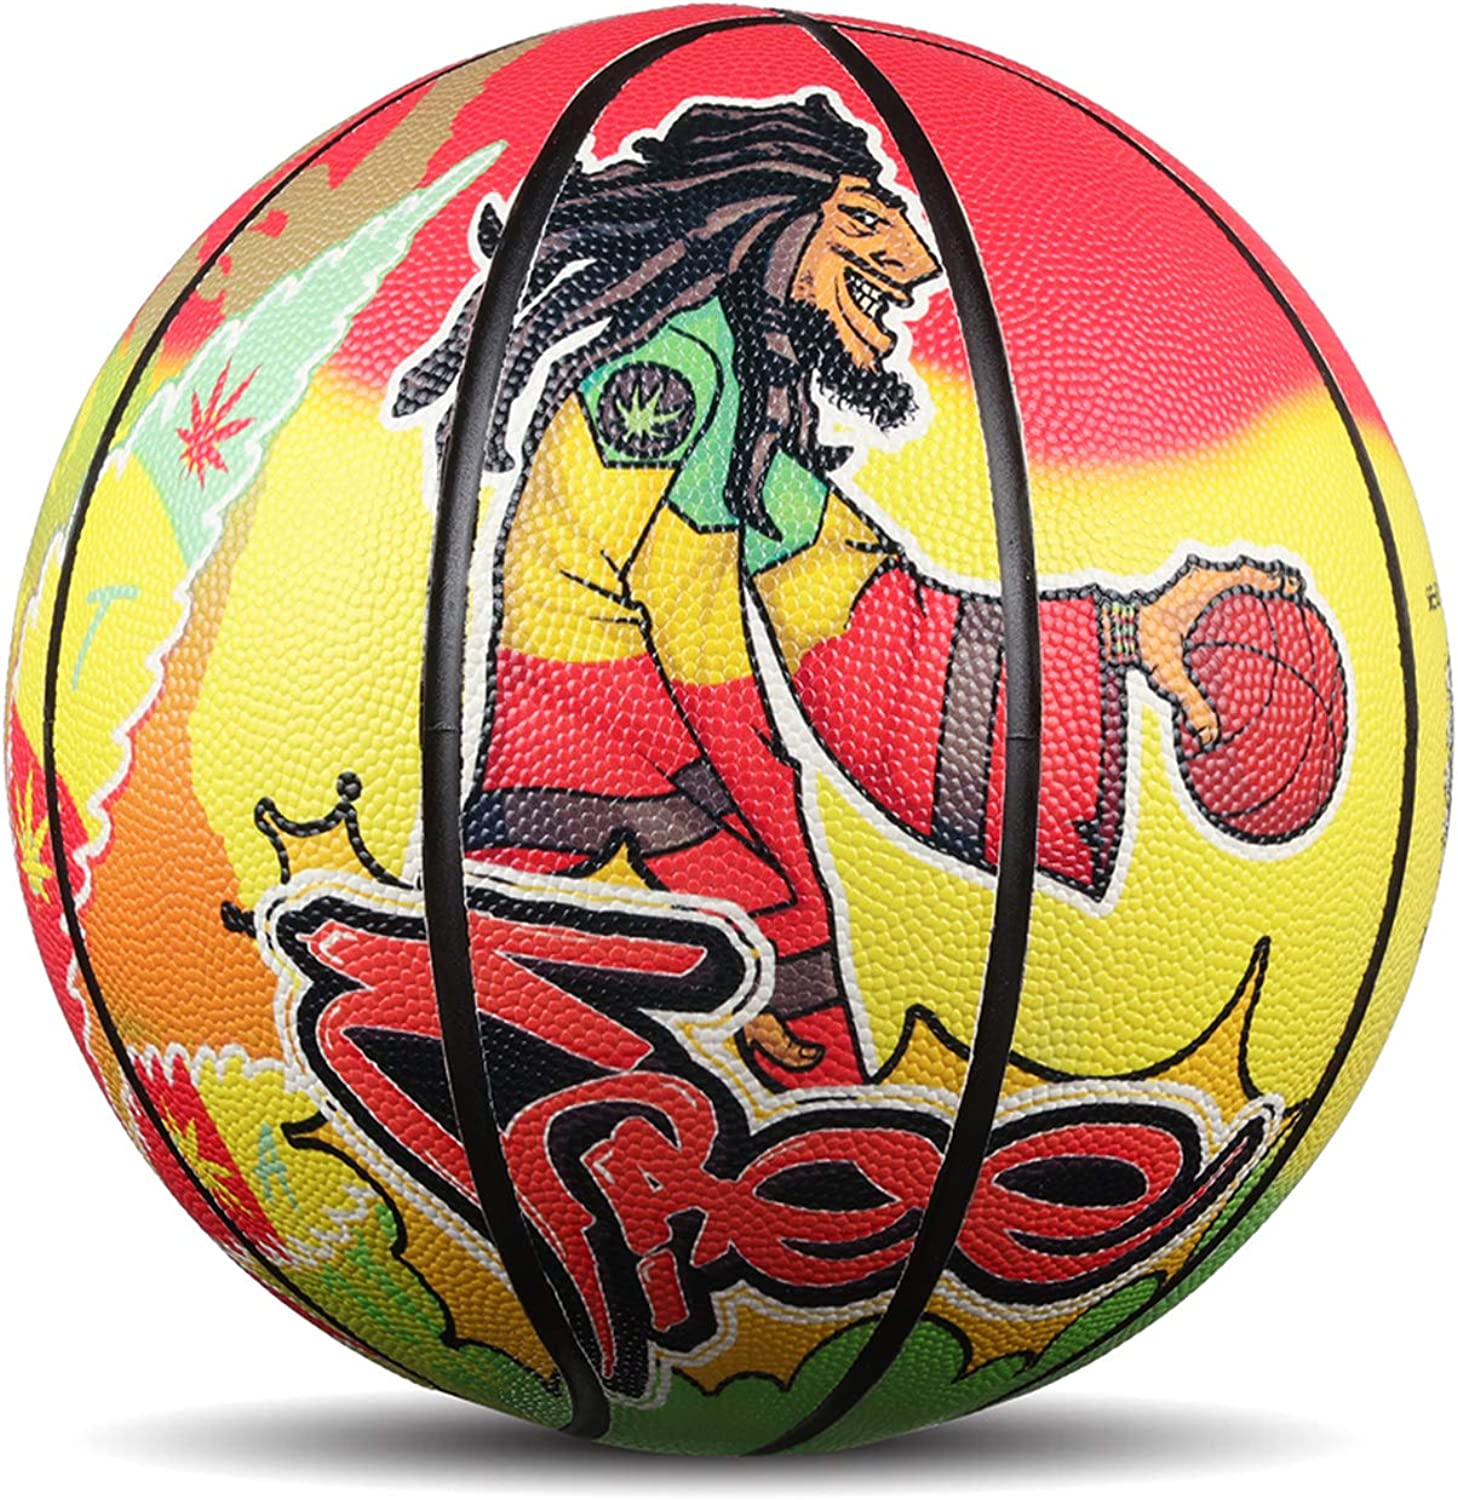 Original Graffiti No. 7 PU NBA Street Outdoor Basketball (7, Yellow) : Clothing